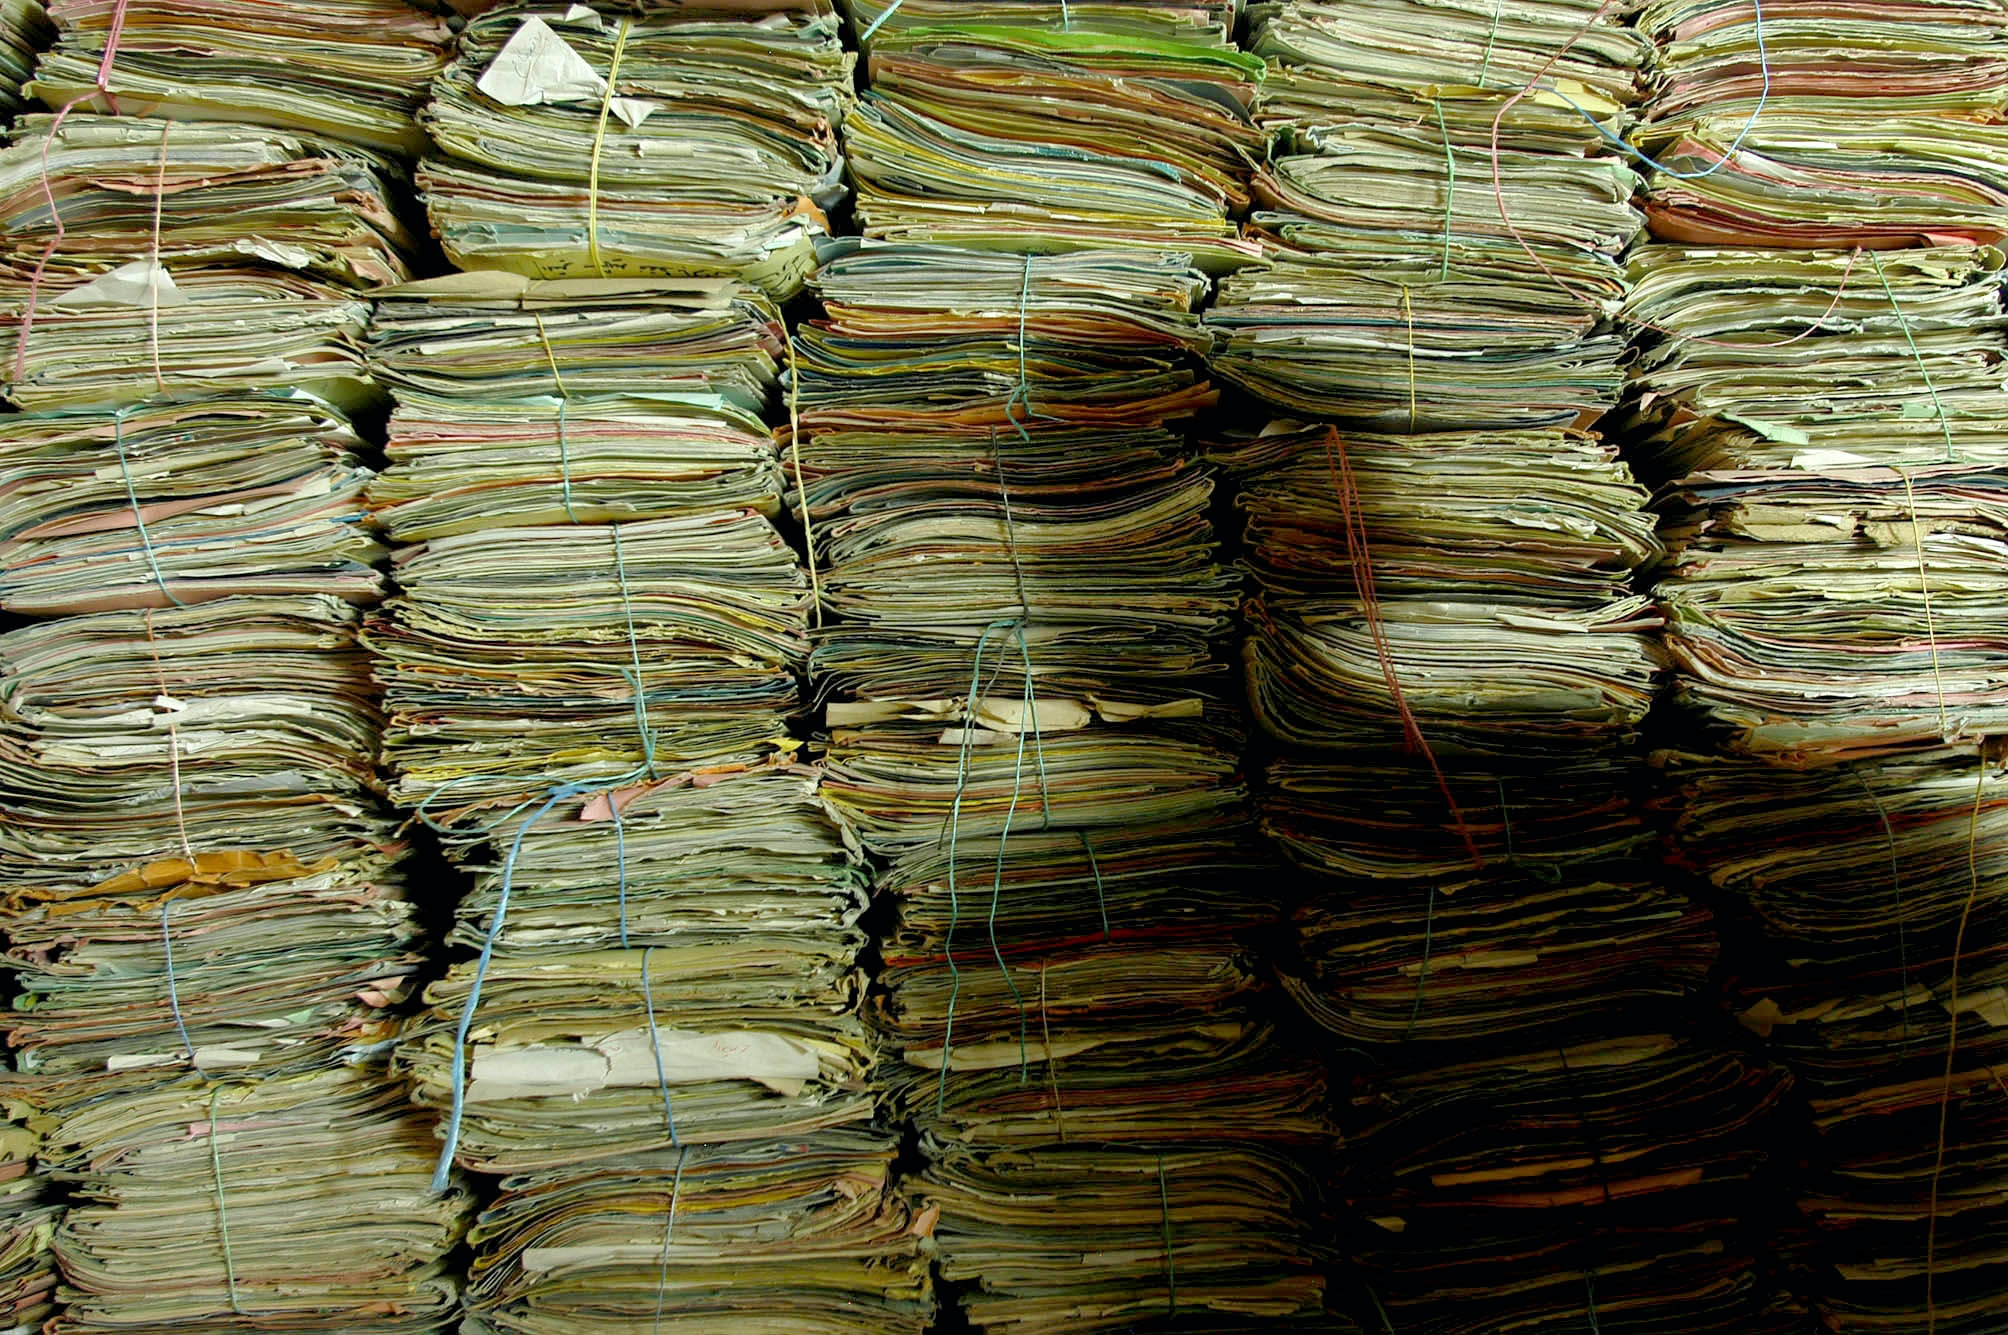 View of stacked files created by the Arab Socialist Ba'ath Party documenting torture, executions, and mass graves in Baghdad, Iraq on Oct. 19, 2003. The files are currently being handled by Kanan Makiya and his assistant, Hassan, of the Iraq Memory Foundation. Iraqi citizens and occupying forces recovered the files, which were created by Ba'ath party officials prior to the U.S. invasion.